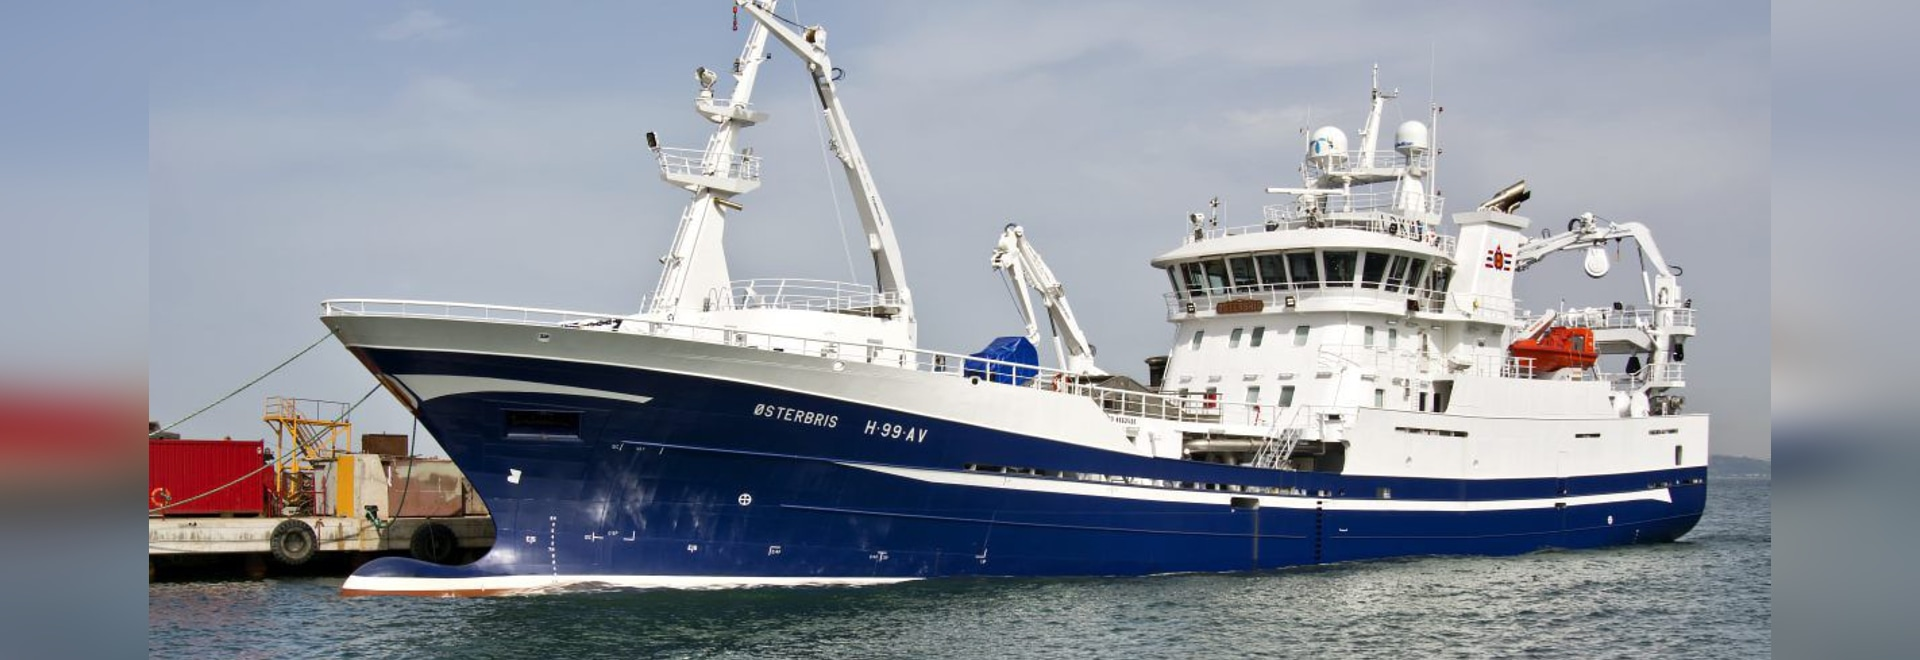 NEW: fishing trawler professional fishing-vessel by Cemre Shipyard